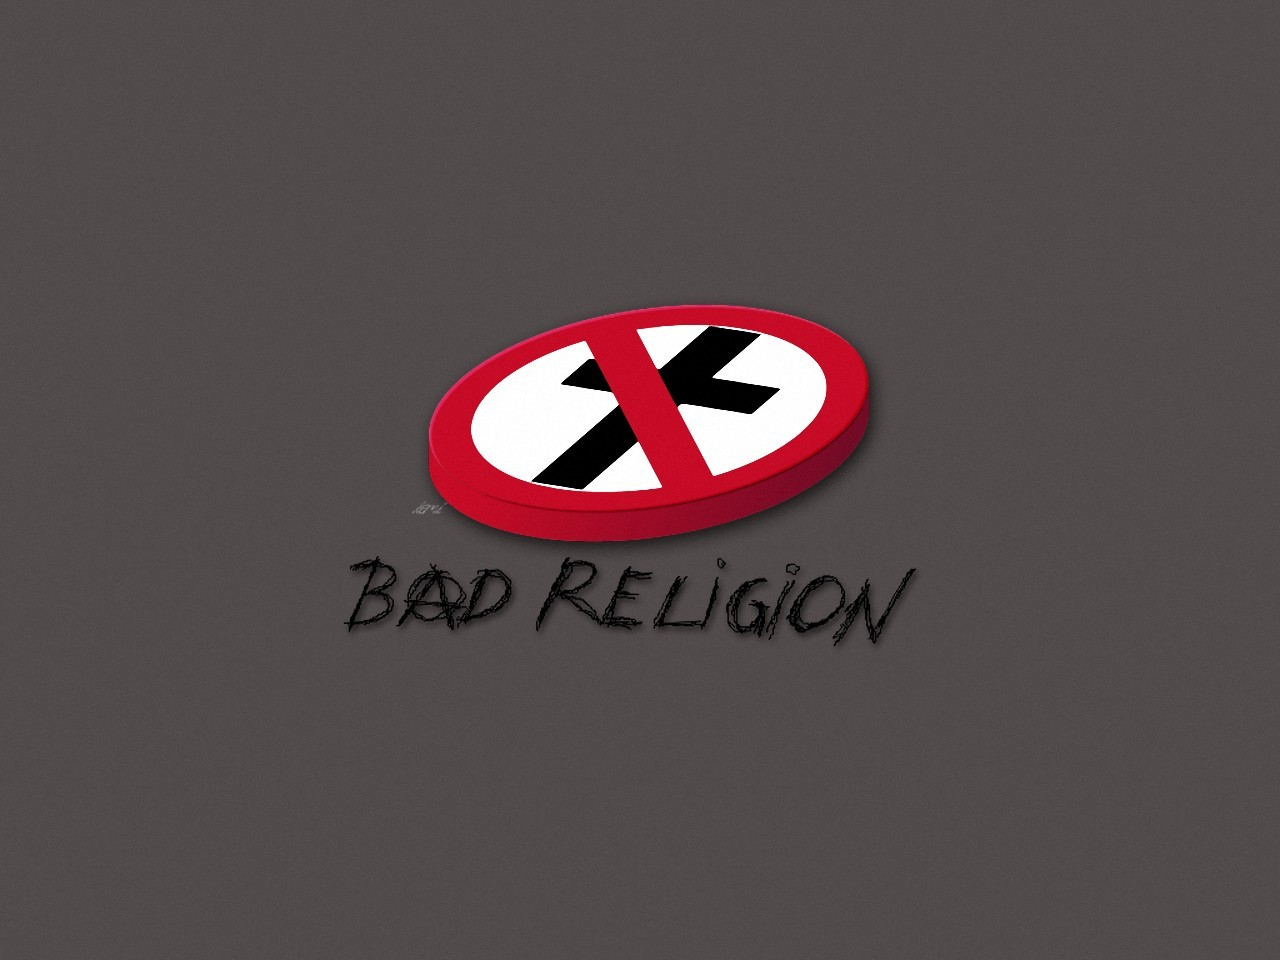 bad religion wallpaper iphone: Historiador Do Rock: Wallpapers Bad Religion